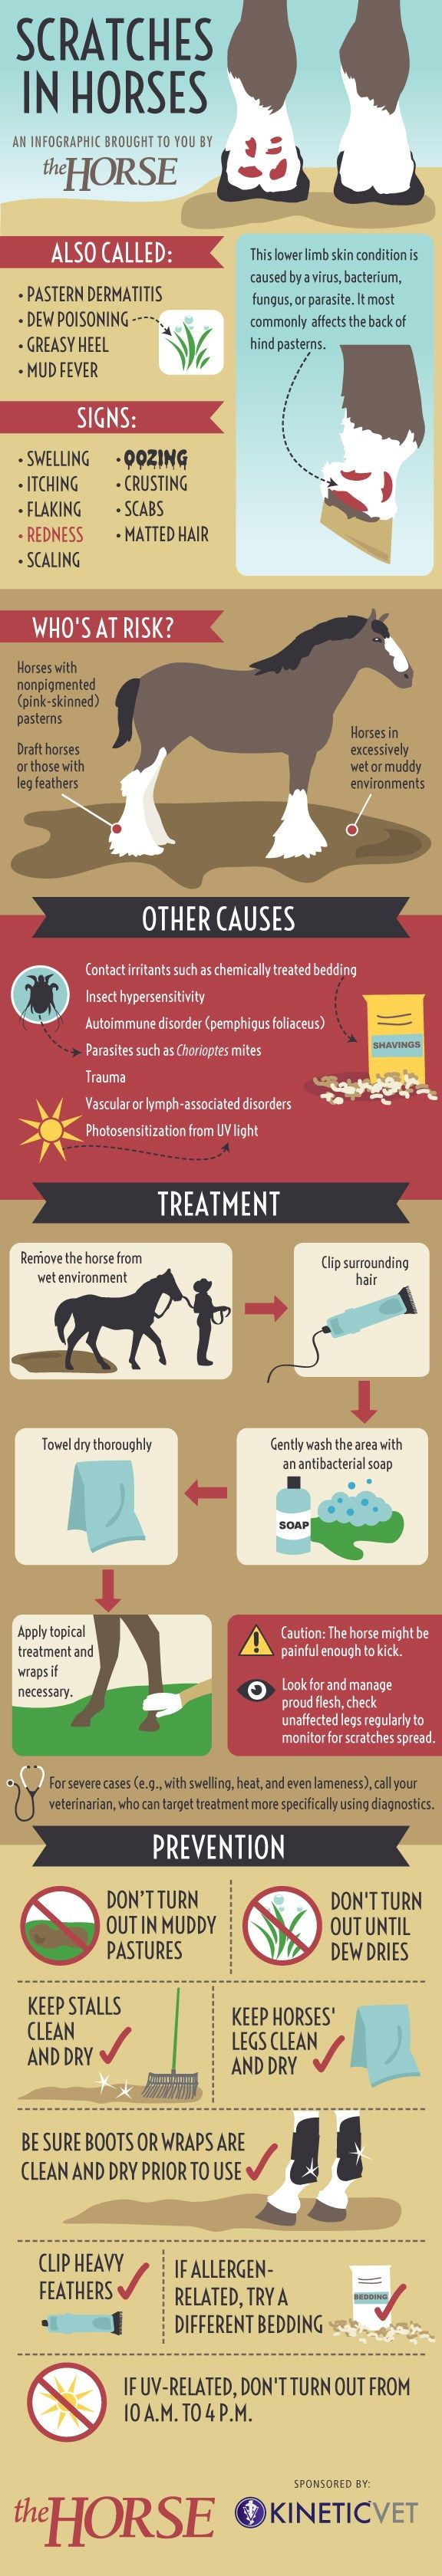 Scratches in Horses: Discover the possible causes of scratches and how you can prevent and treat this frustrating dermatitis often found on a horse's pastern in our step-by-step visual guide.